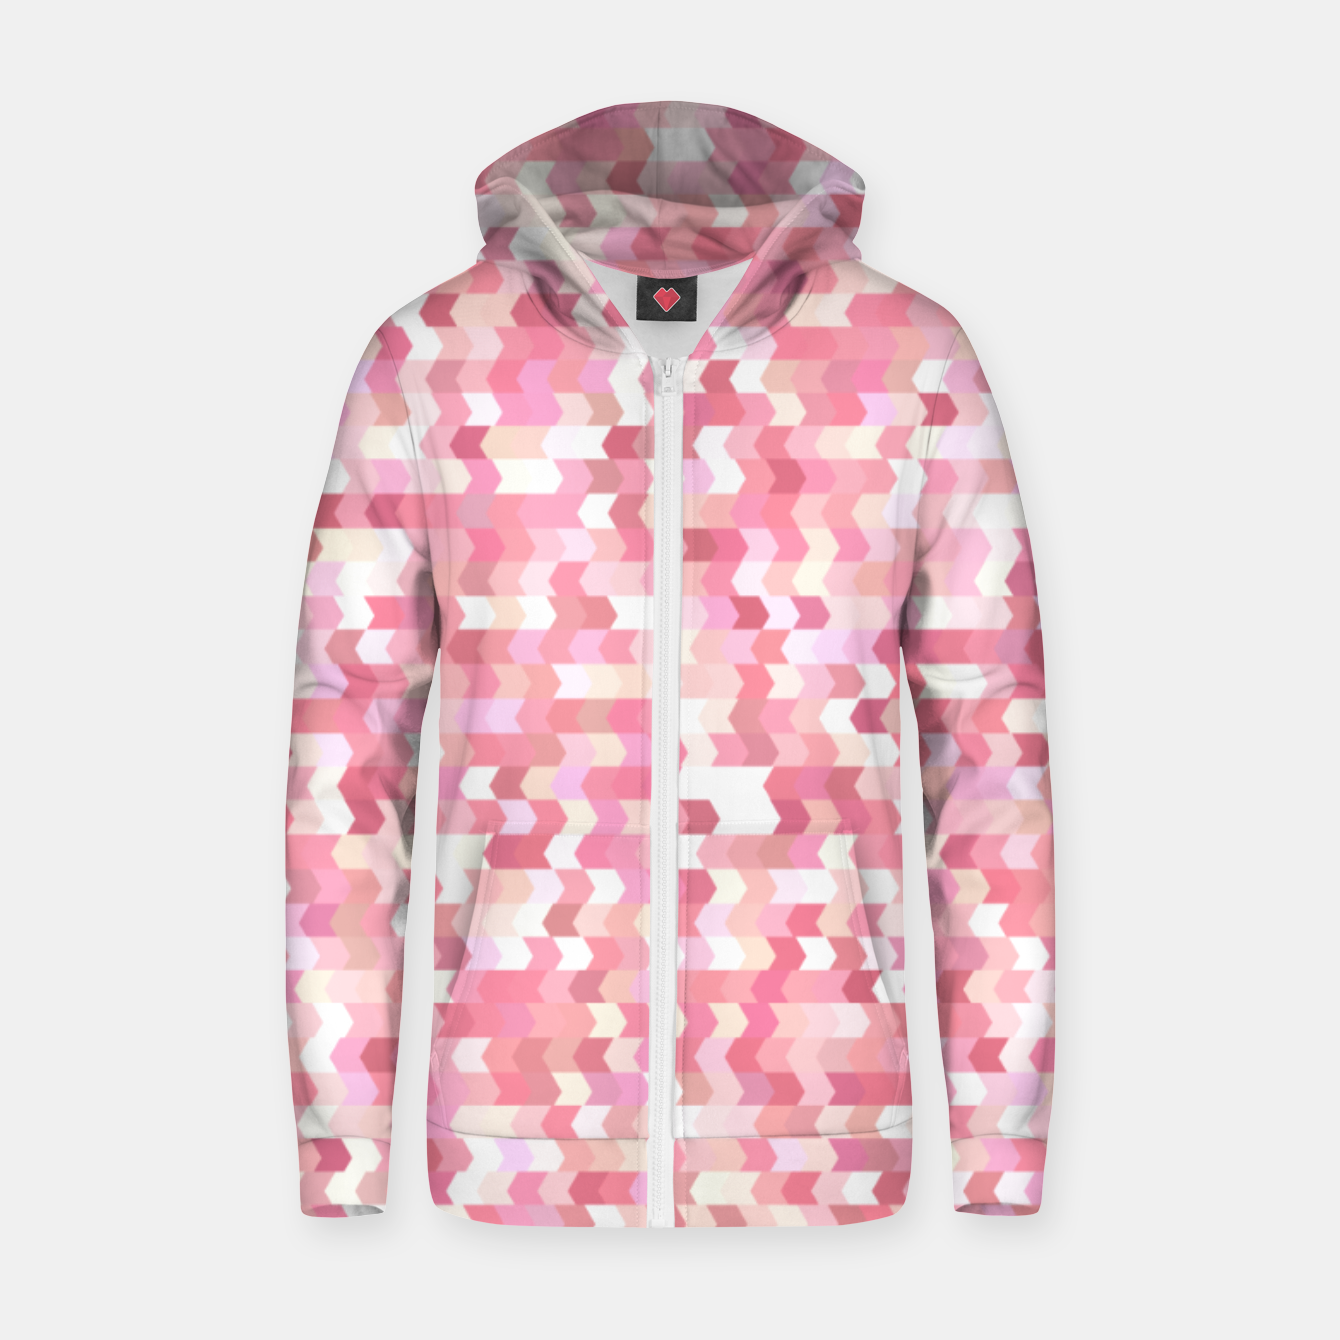 Foto Solid arrows in soft pink shades, cute baby flush pink pattern Zip up hoodie - Live Heroes